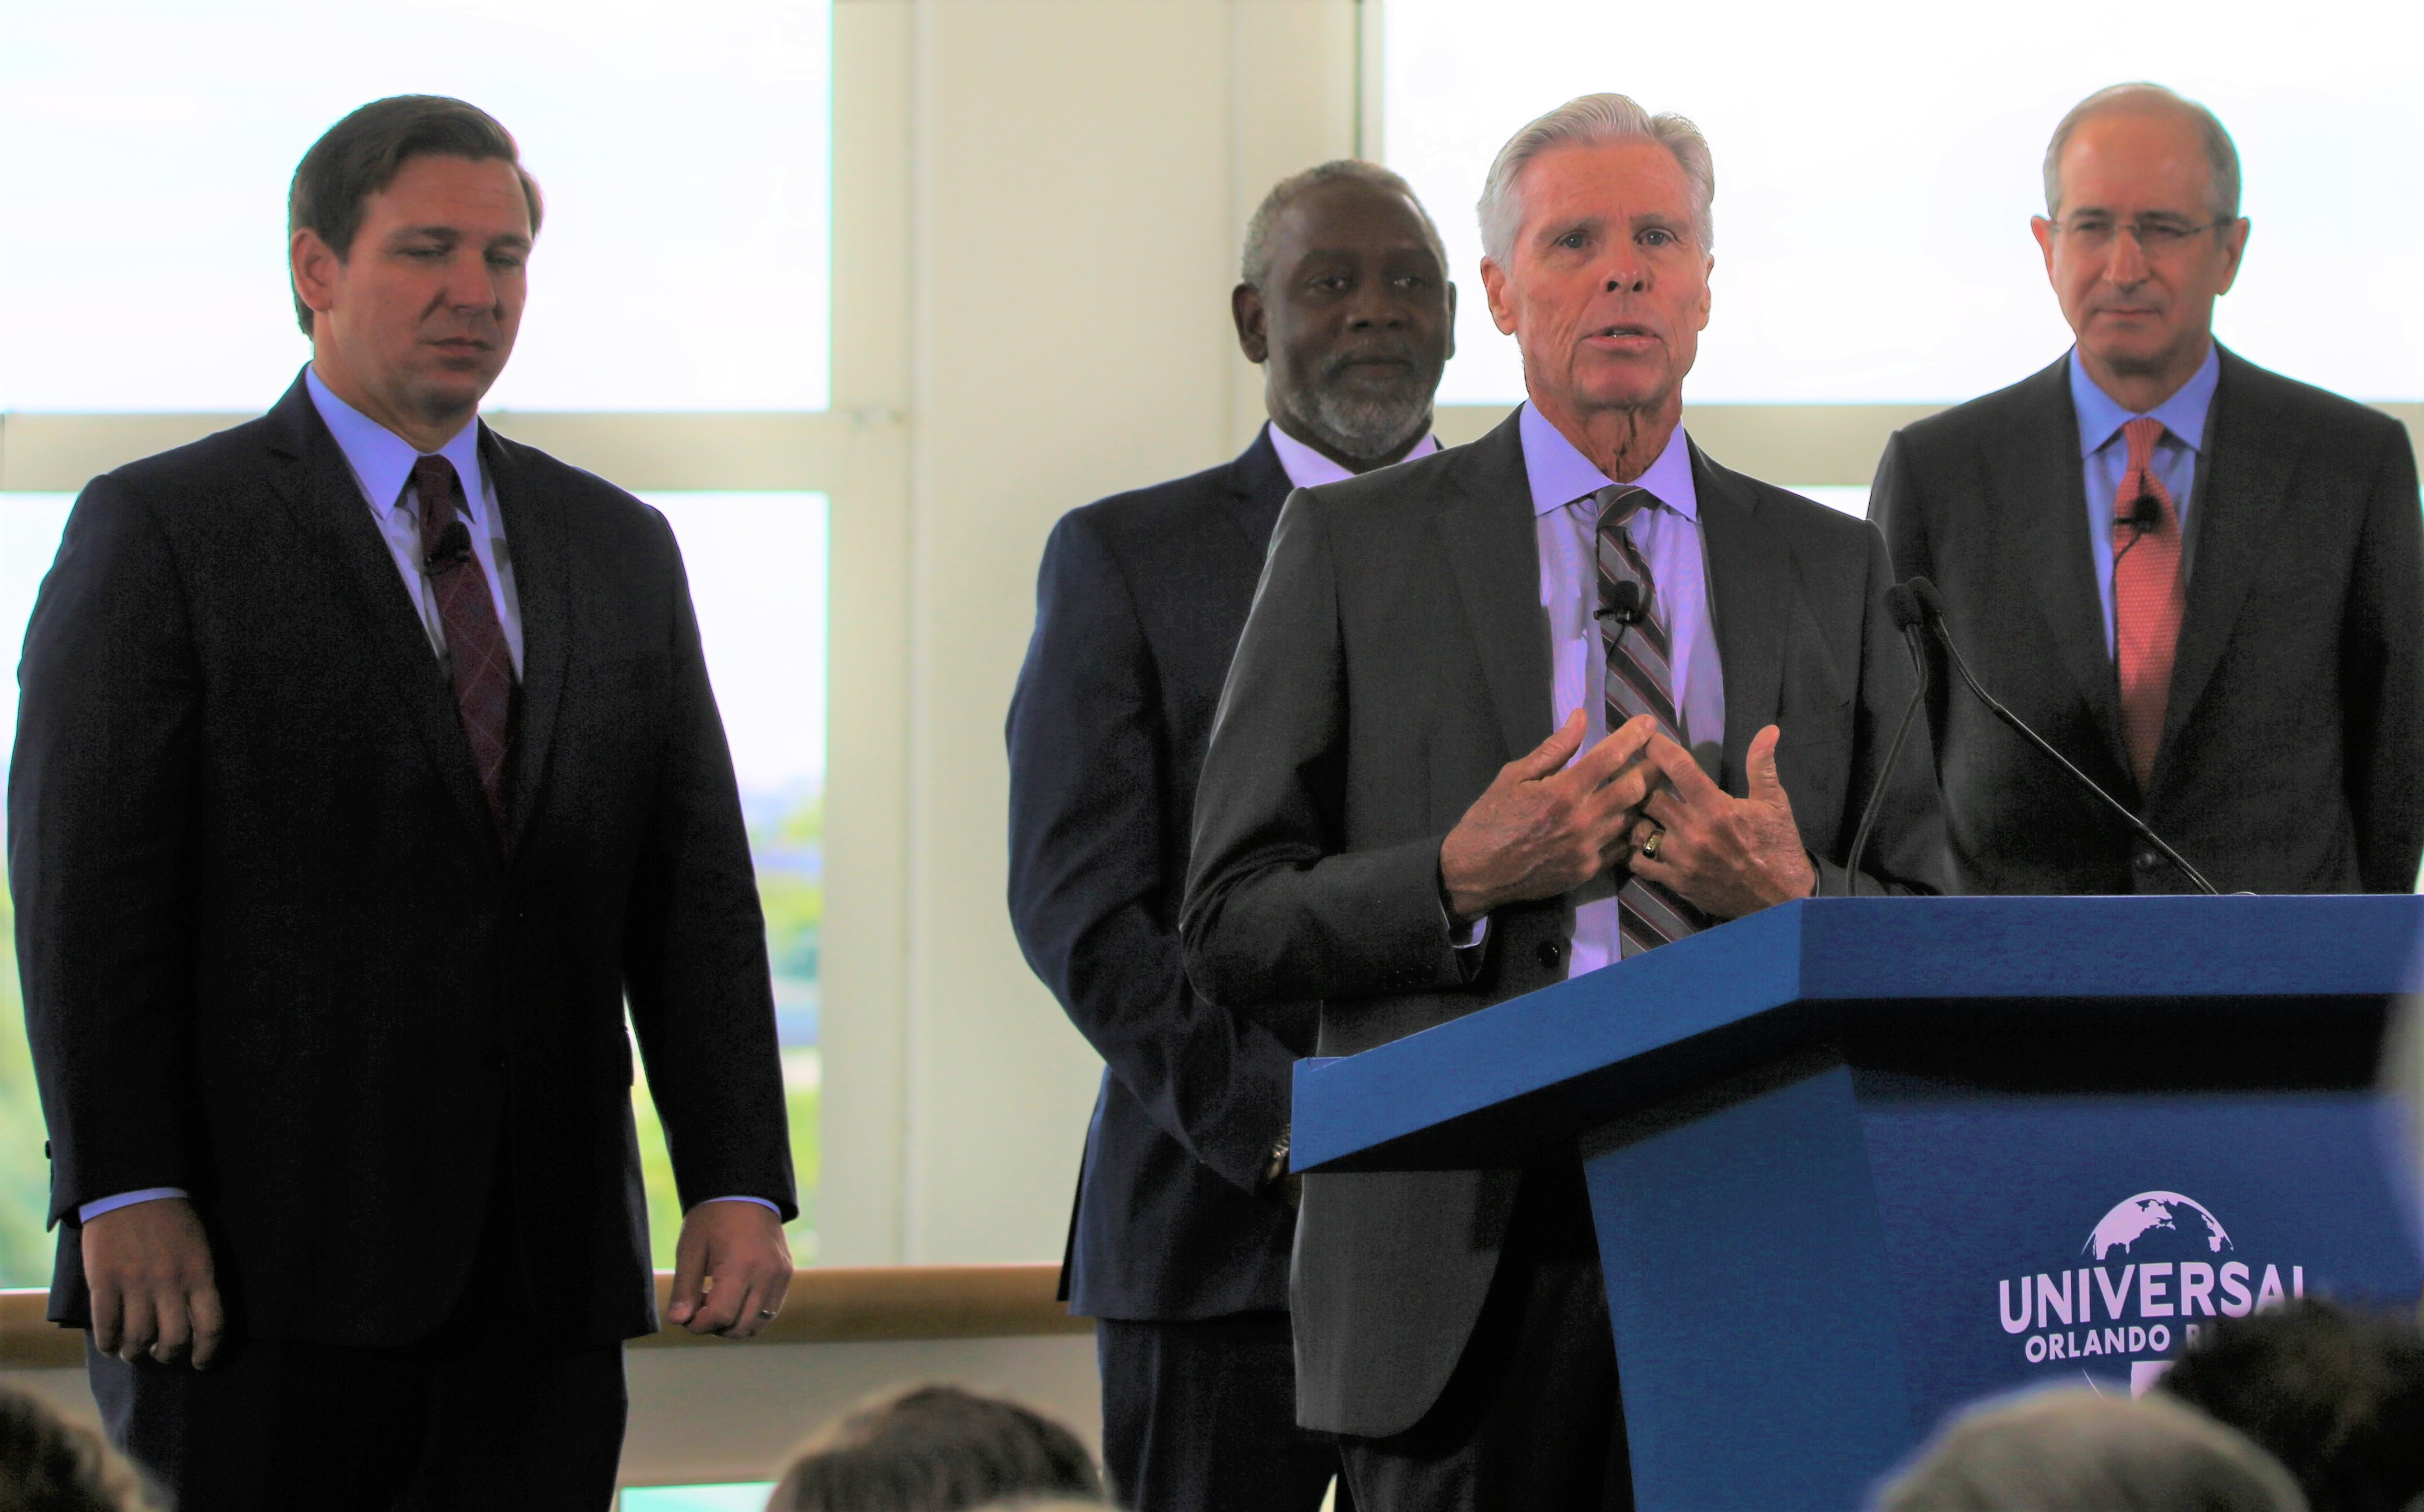 Tom Williams, Chairman and Chief Executive Officer for Universal Parks & Resorts, was joined by Florida Governor Ron DeSantis, Orange County Mayor Jerry L. Demings, and Brian L. Roberts, Chairman and Chief Executive Officer of Comcast Corporation to announce the building of Universal Orlando's 4th park, Epic Universe, at the Orange County Convention Center Thursday, August 1, 2019. (Photo by Willie David/Florida National News, FNN News Network)